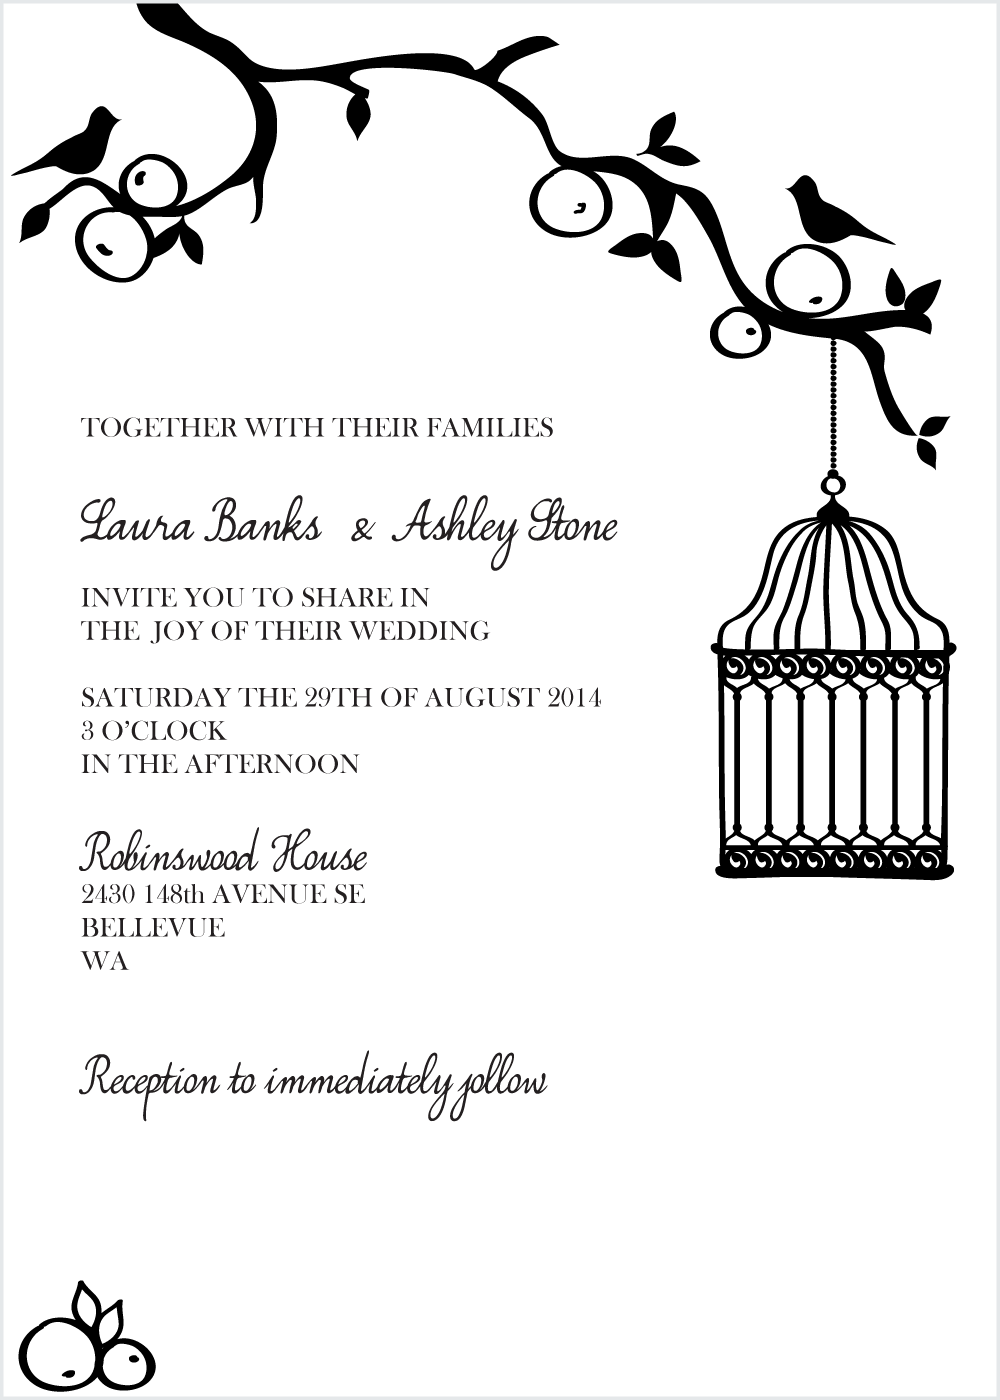 wedding invite templates wedding invite template 17 best images about invitations on pinterest woodland wedding on wedding invitation templates png